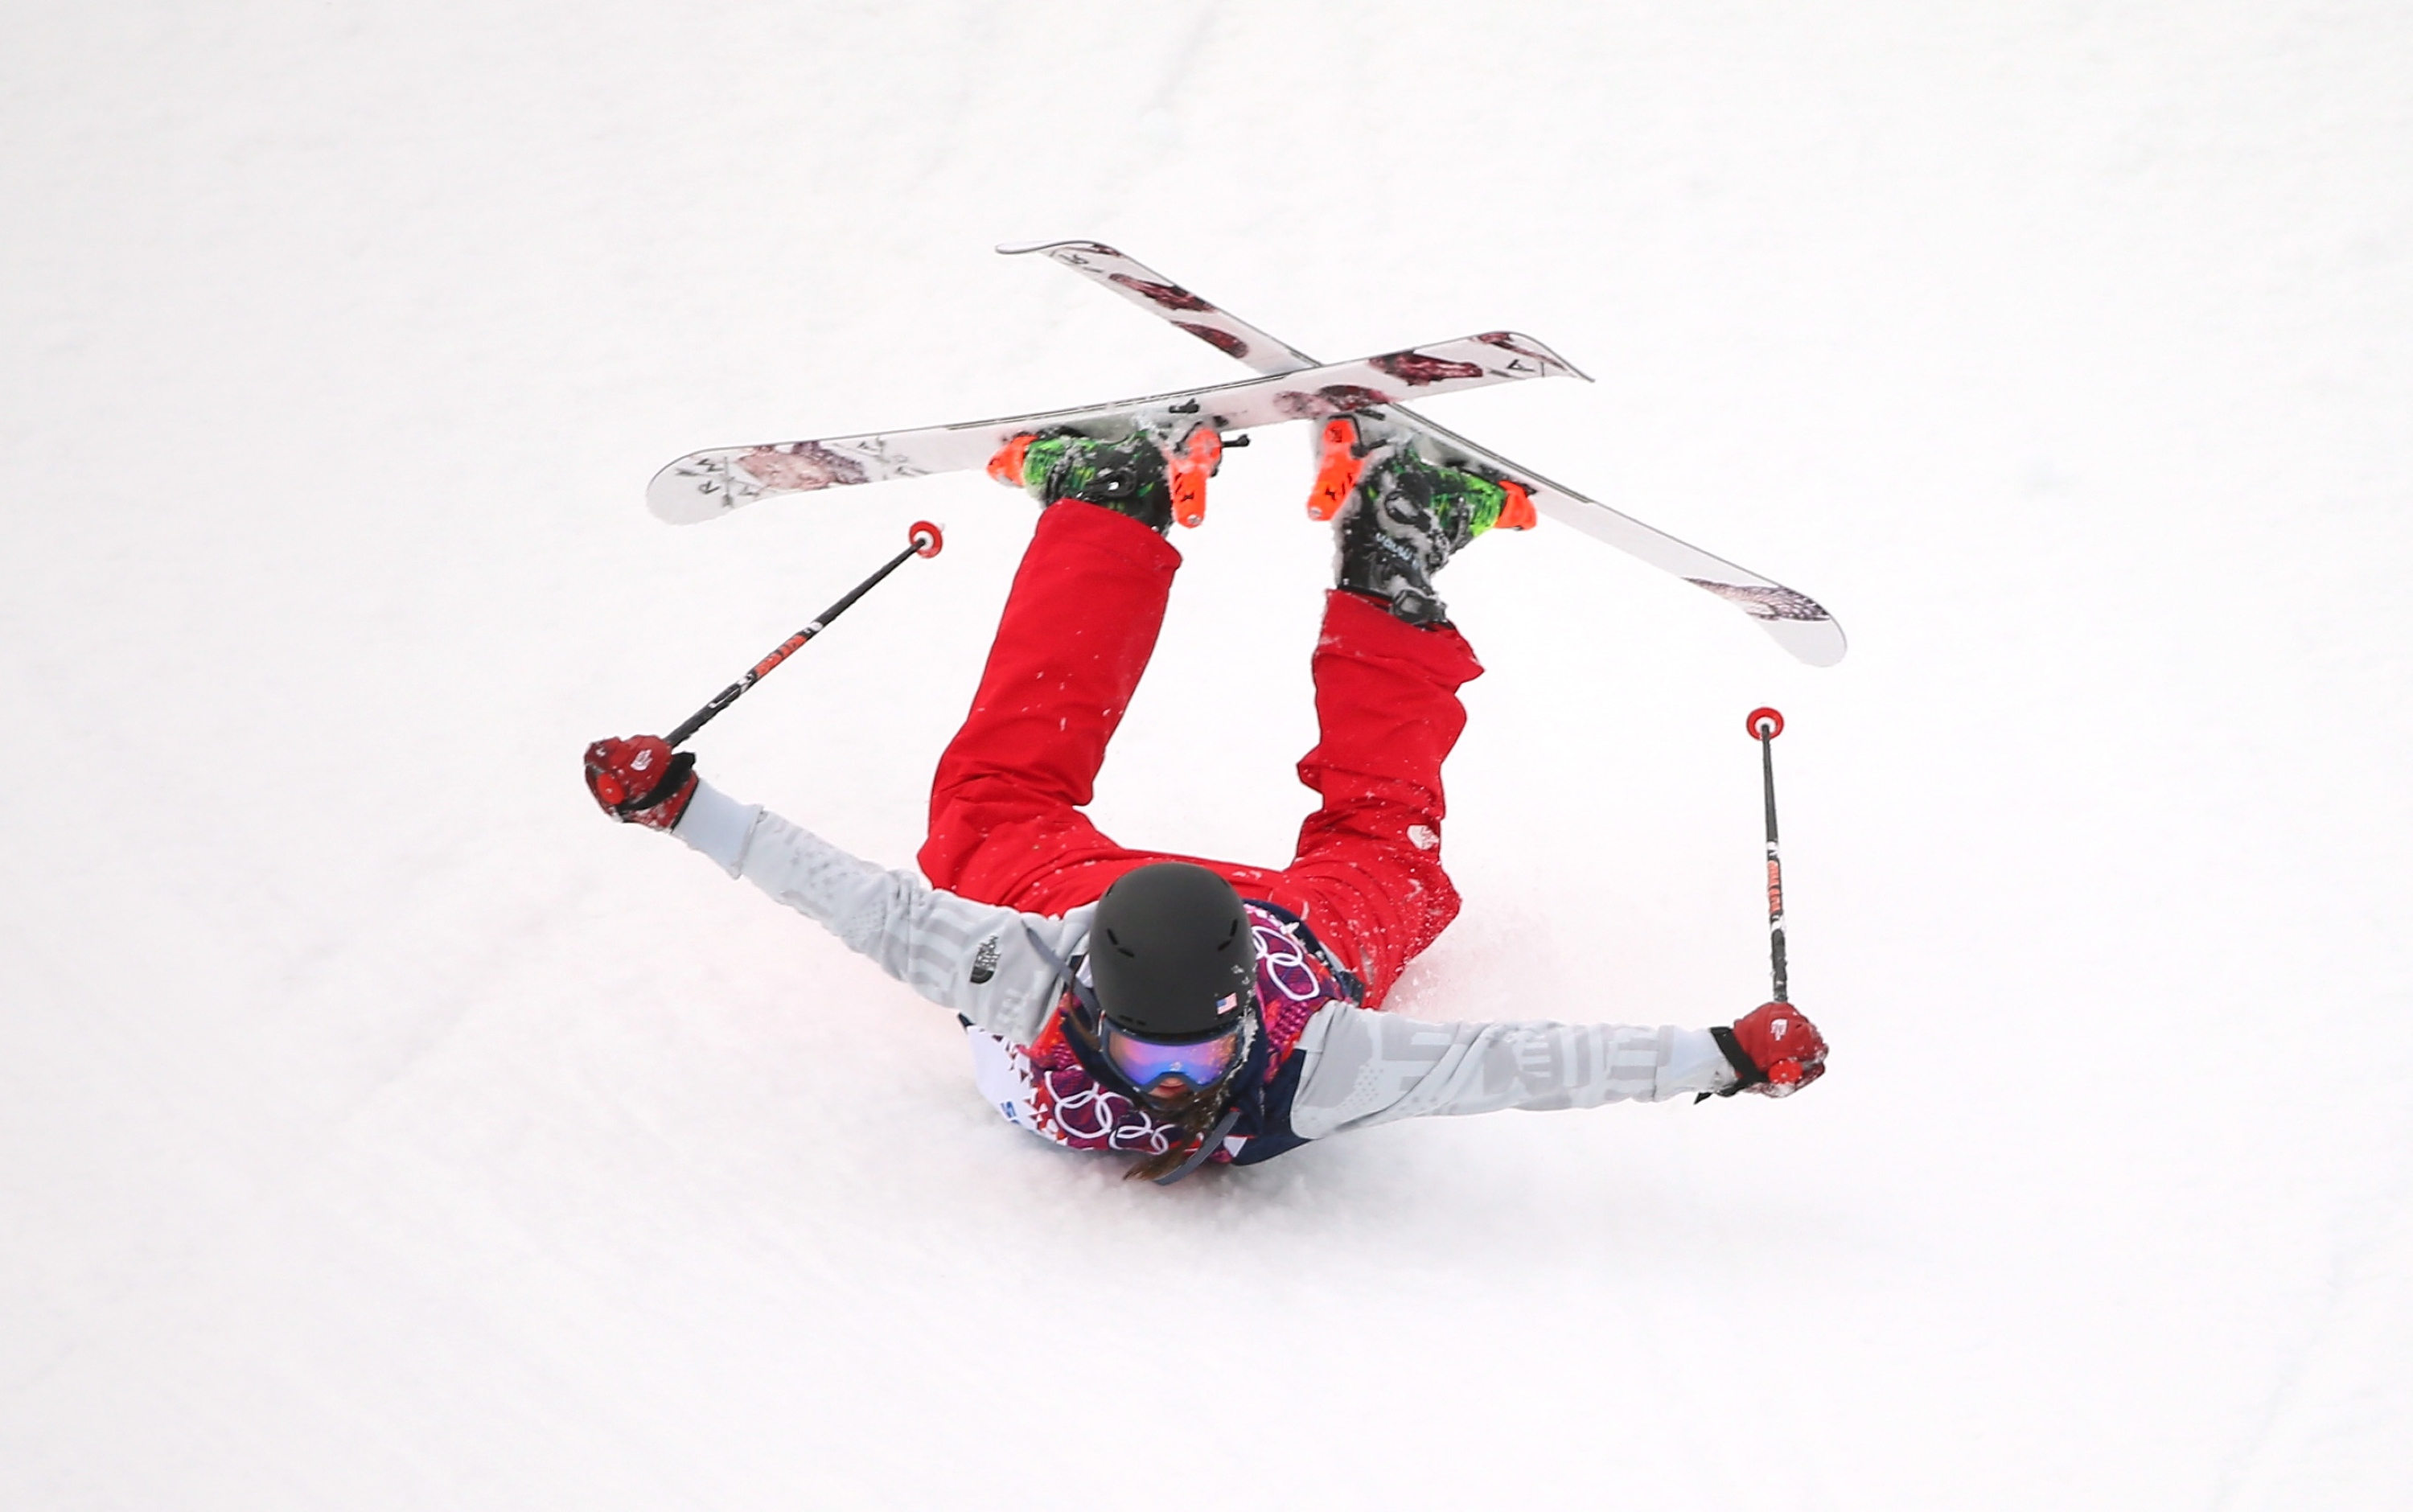 ... Ski Slopestyle Finals on day four of the Sochi 2014 Winter Olympics at